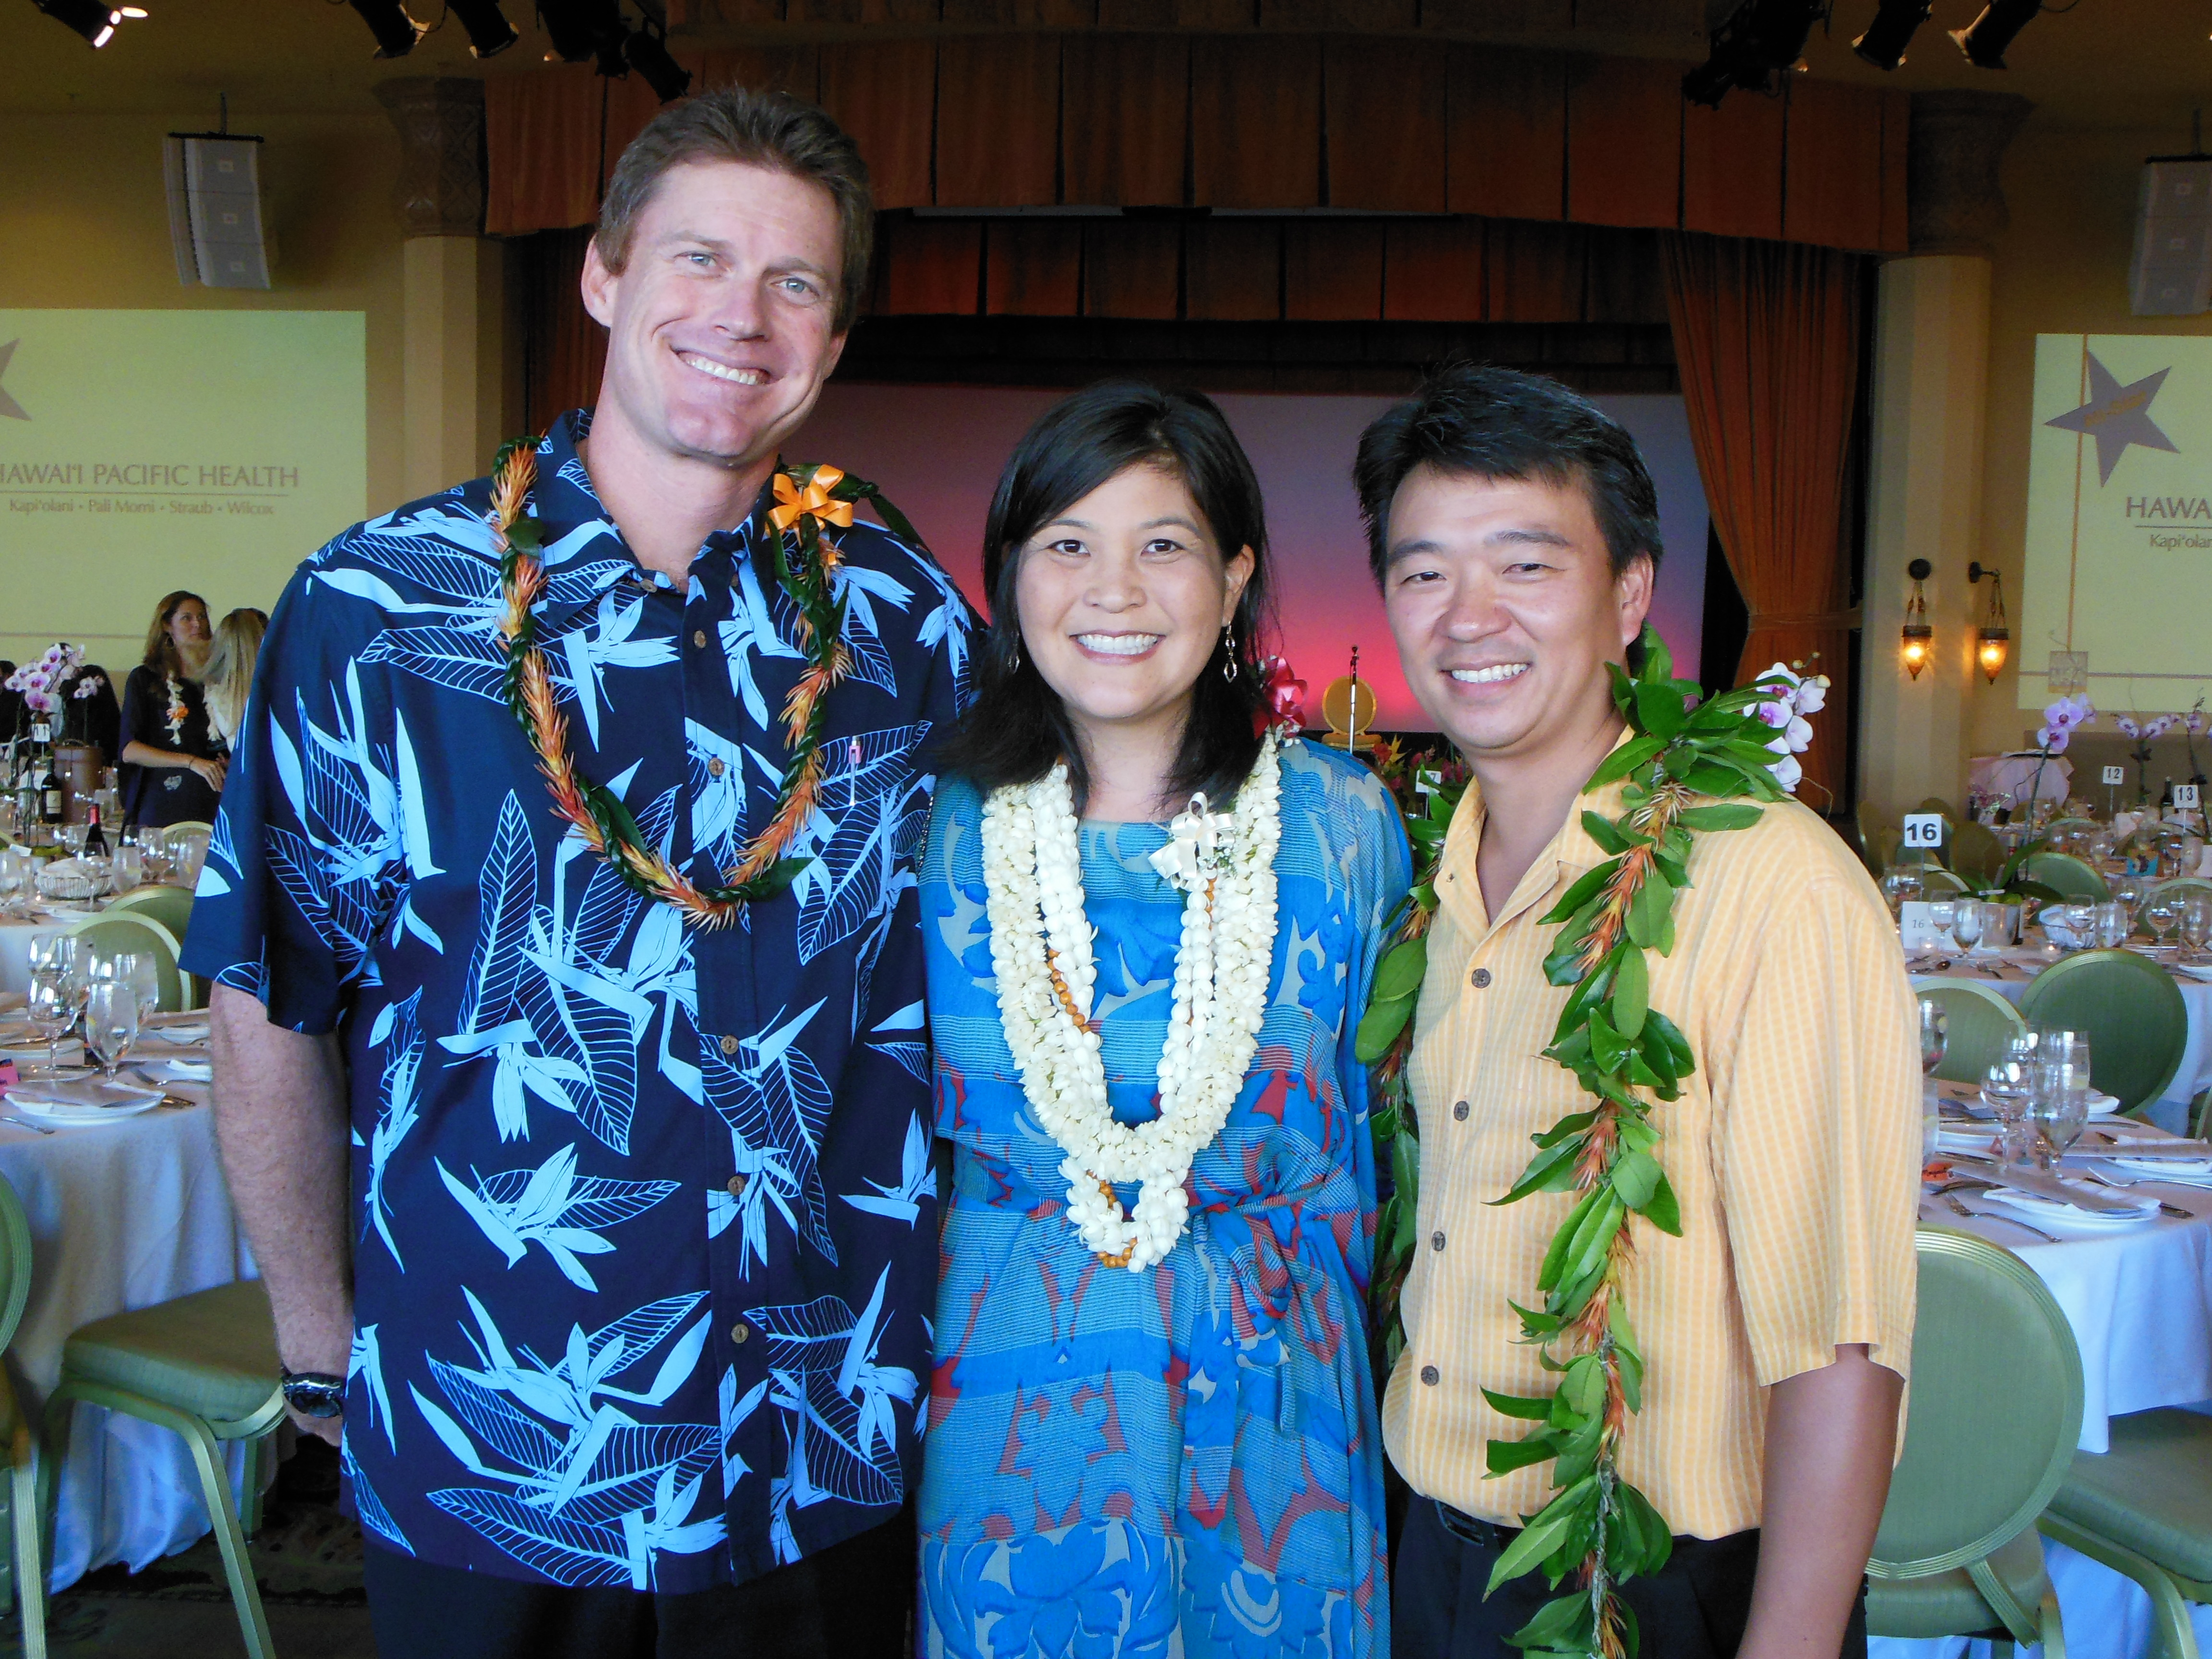 Keahi, Dawn & Lt. Governor